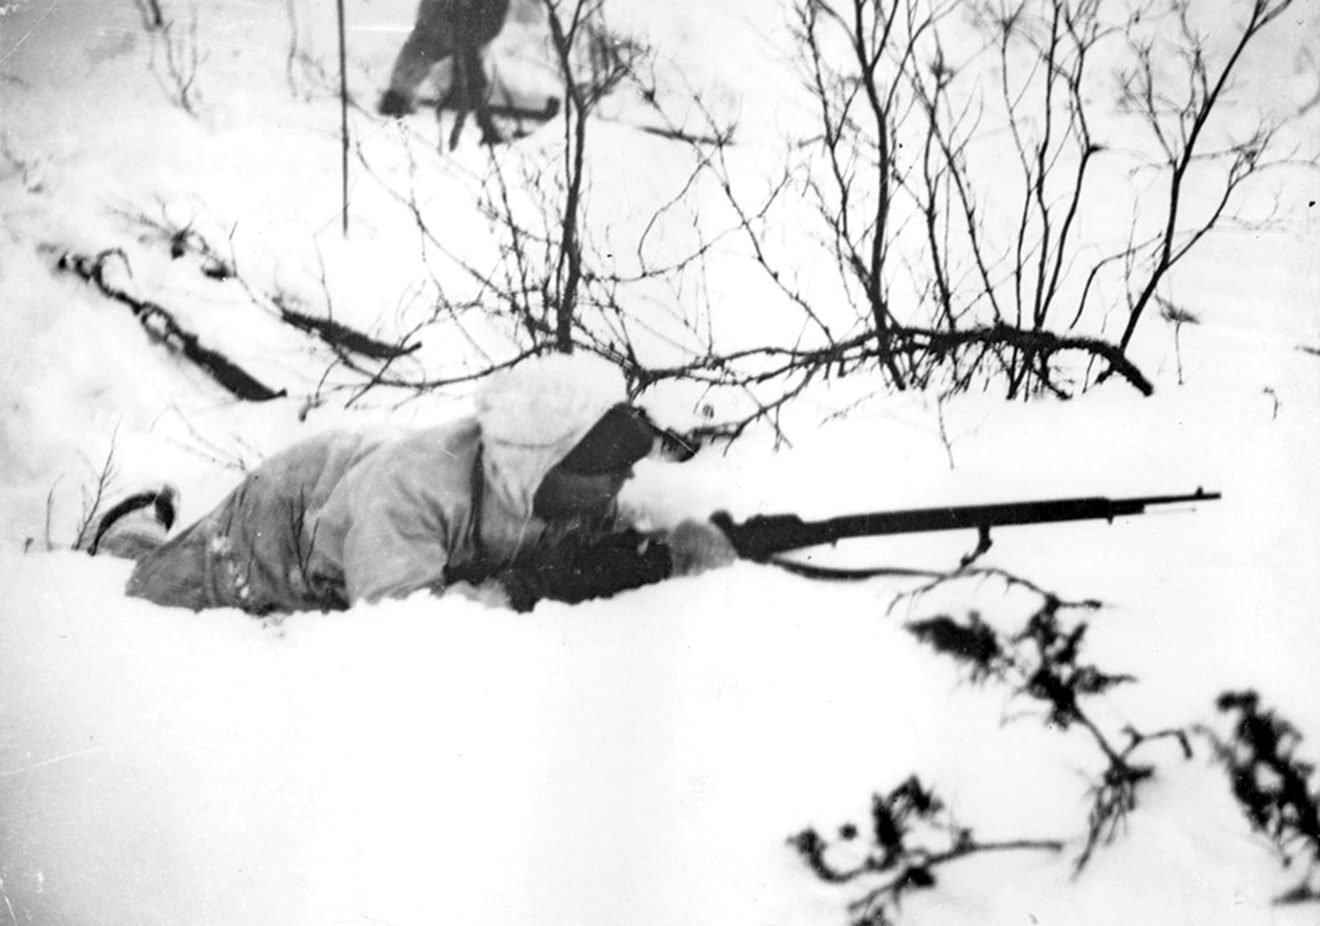 A Finnish soldier in position on the ground during the Winter War, 1940.